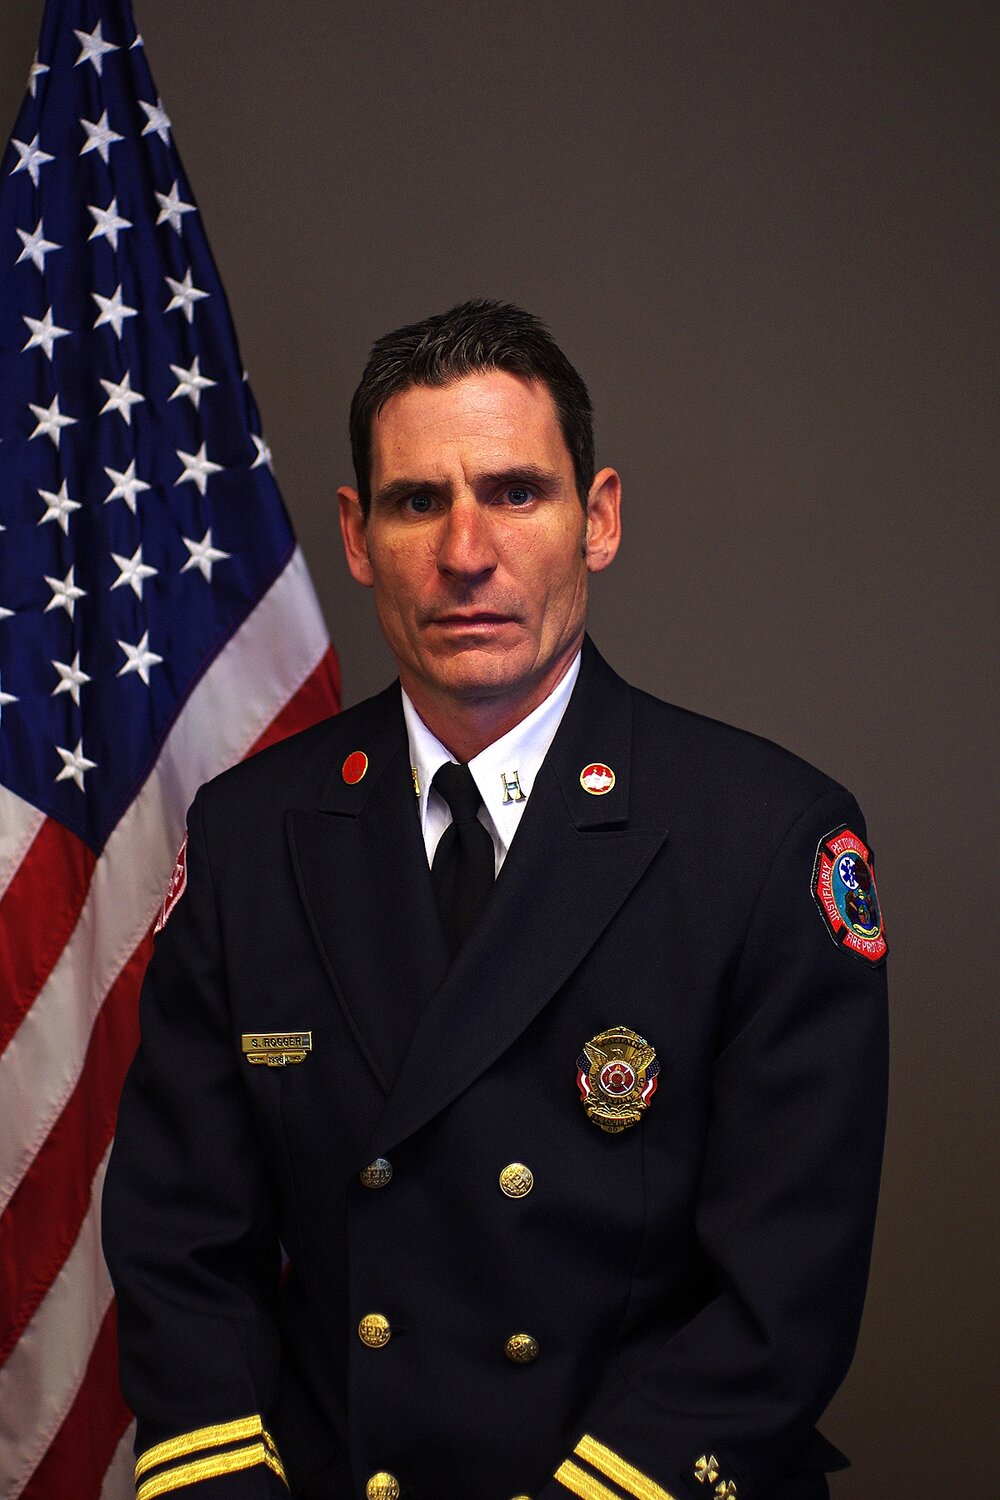 Steve Rogger Pattonville Fire Protection District